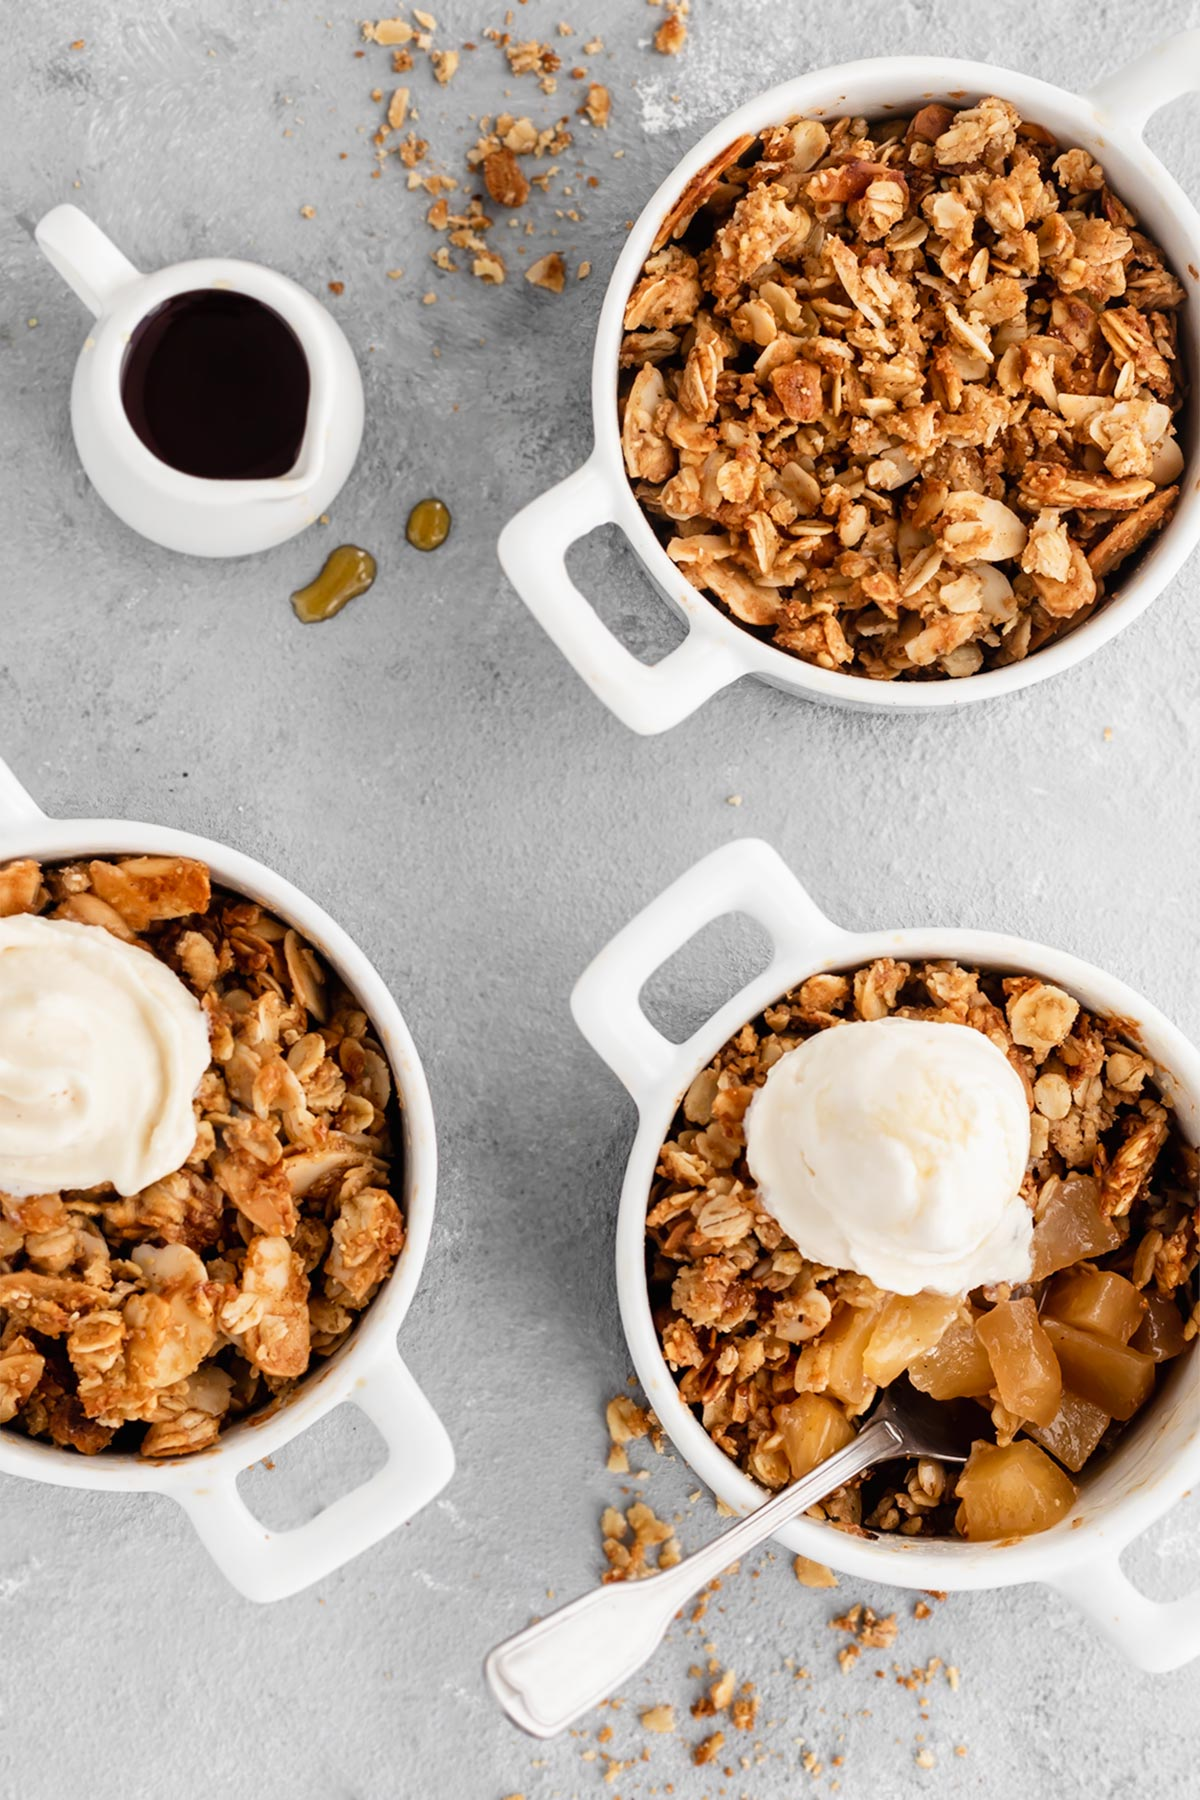 Easy Individual Apple Crisps: a sweet, cinnamon spiced apple filling with a buttery, crunchy topping! Serve them warm with vanilla ice cream and perhaps a drizzle of salted caramel sauce for a quick and delicious dessert!